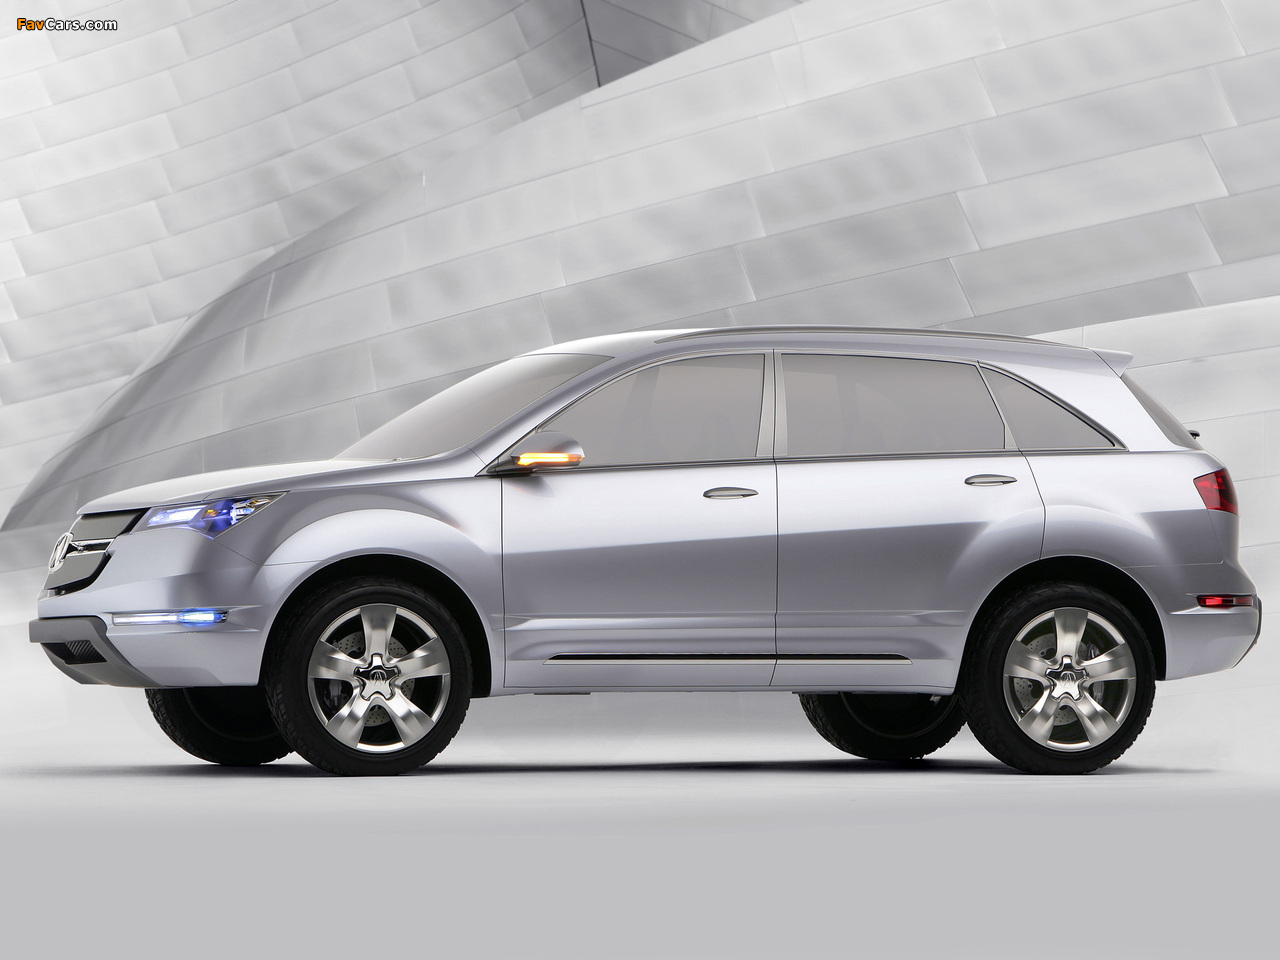 Acura MDX Concept (2006) images (1280x960)